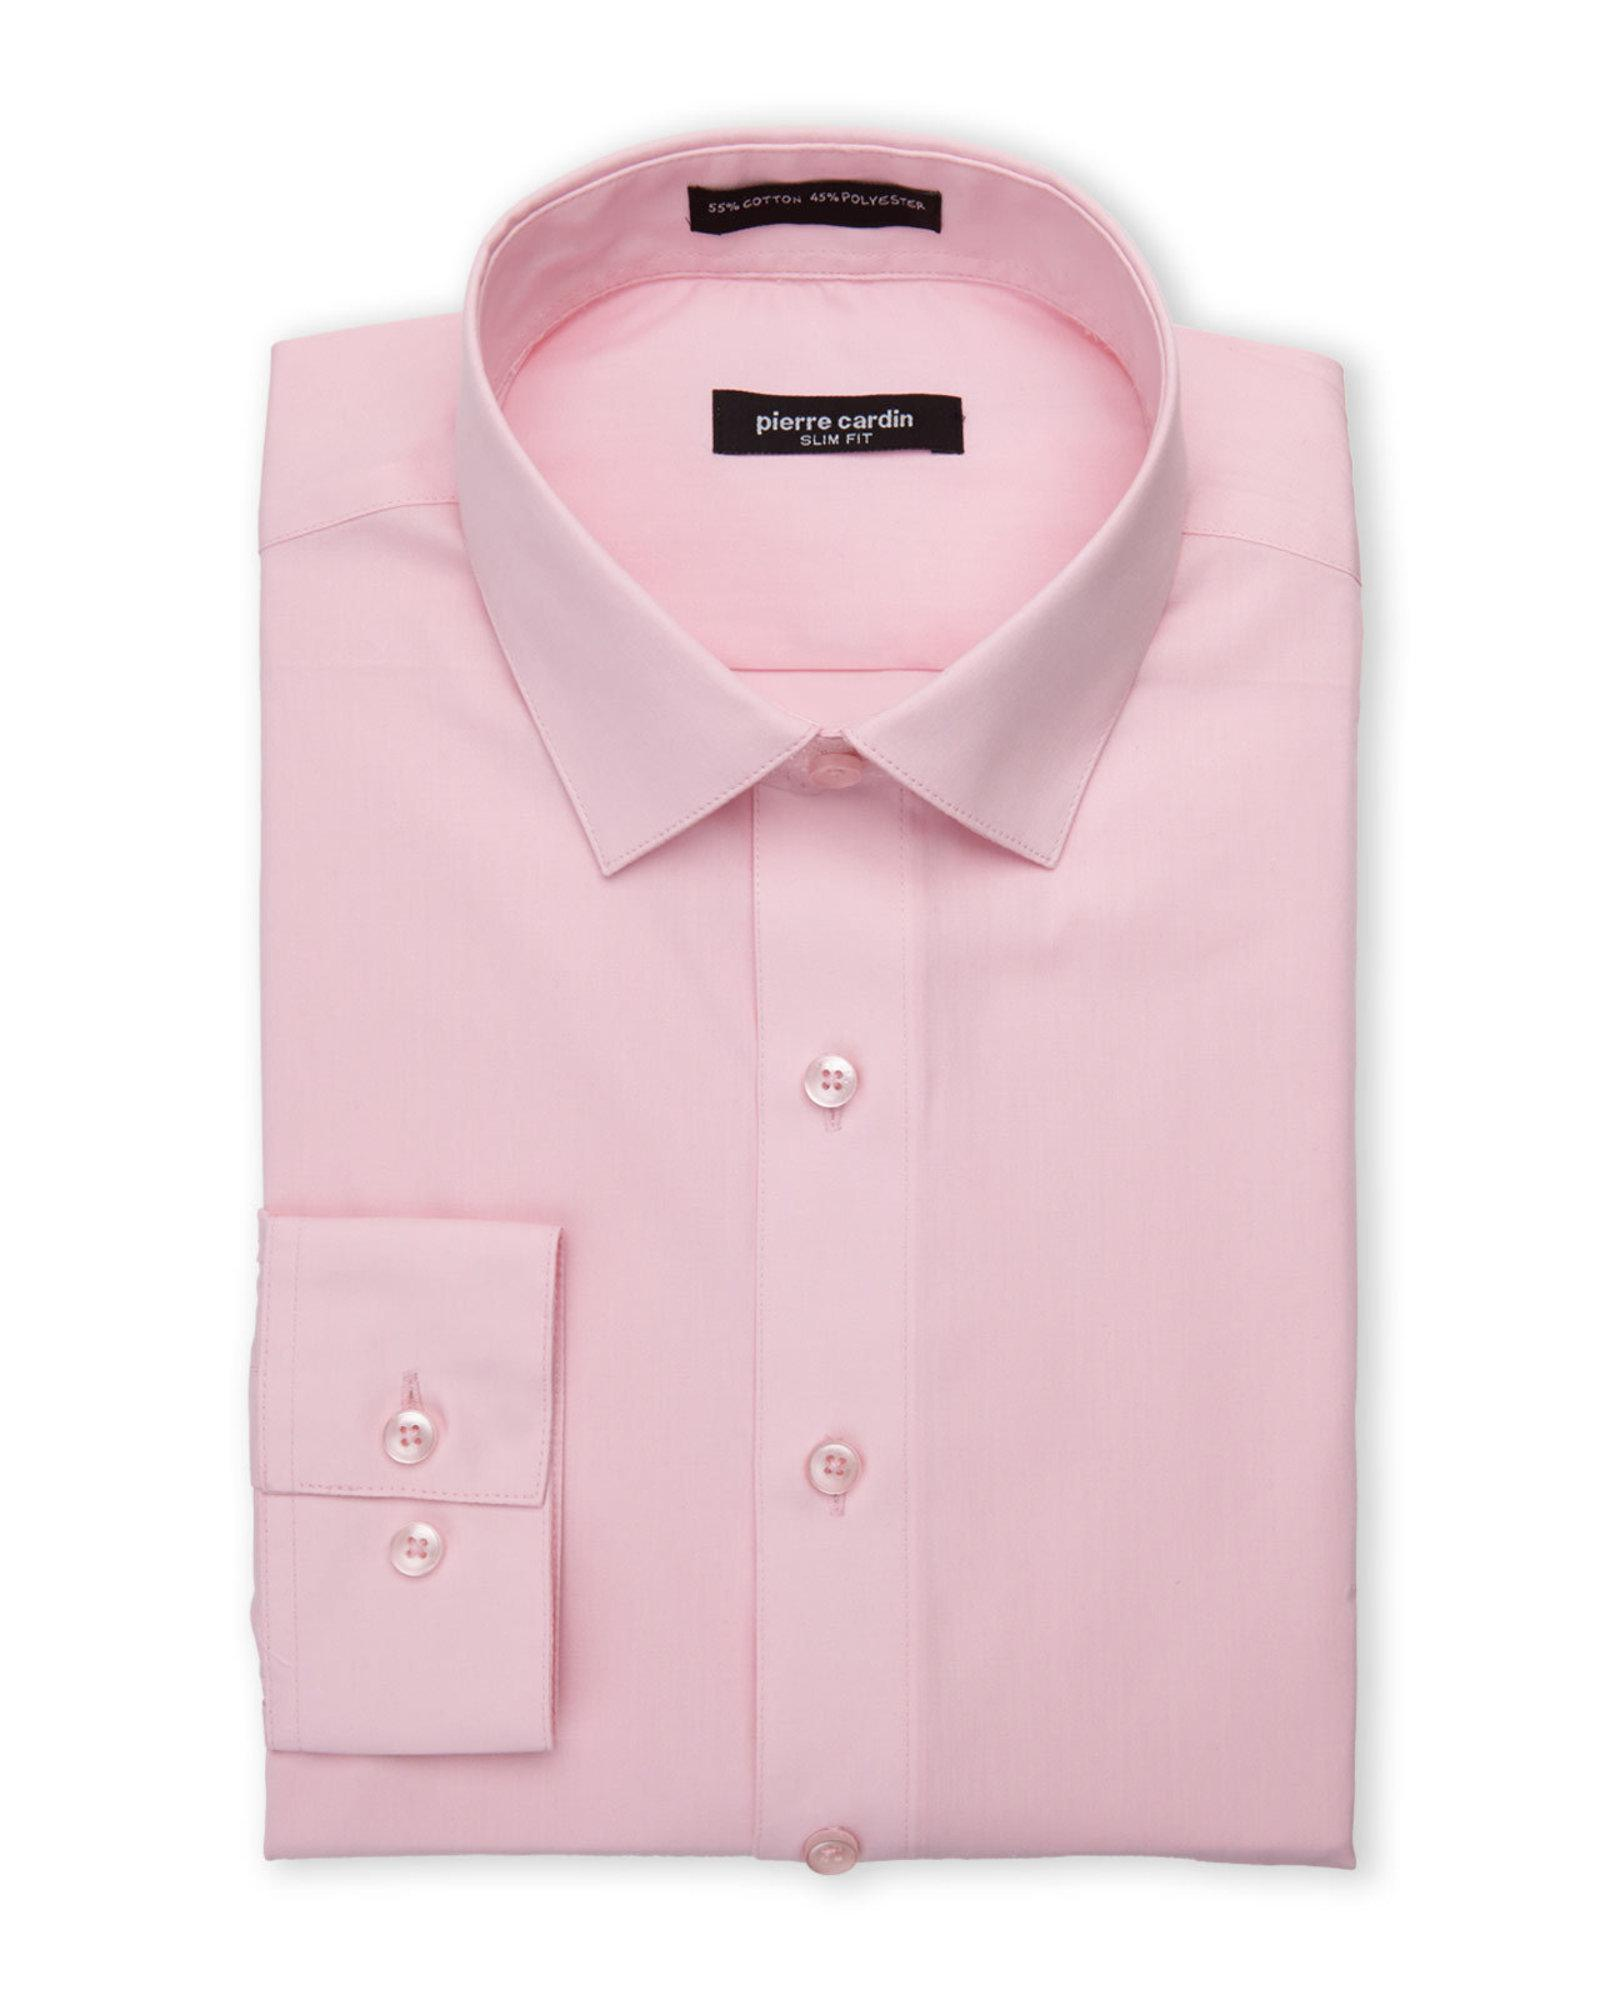 Lyst pierre cardin slim fit pink dress shirt in pink for men for Century 21 dress shirts